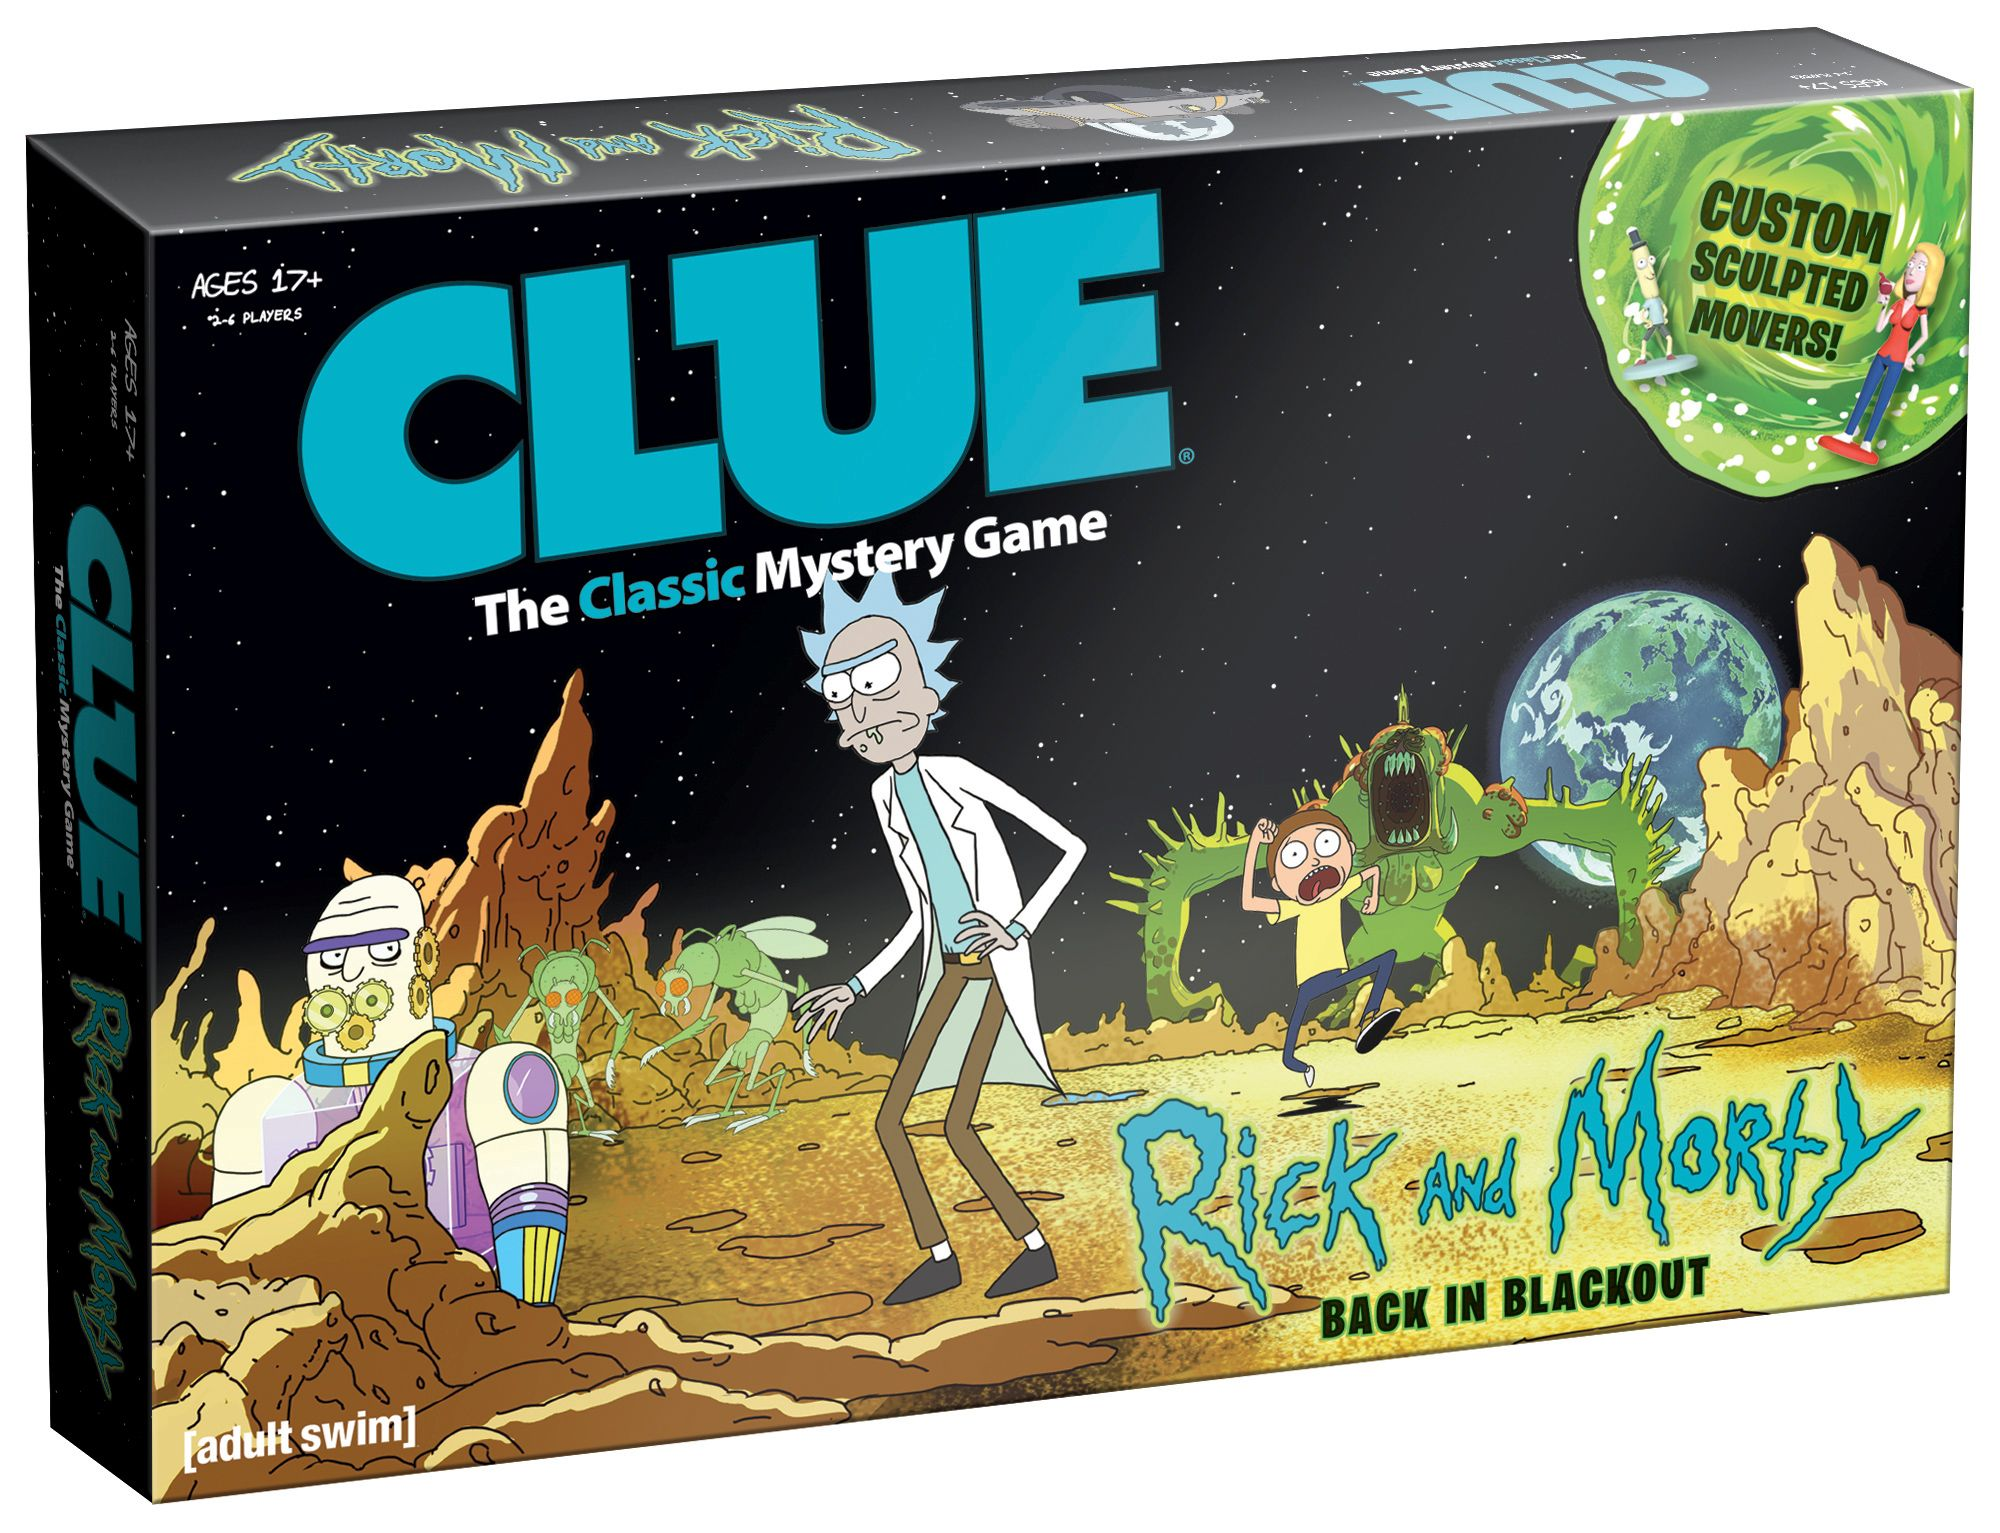 Jogo-Rick-and-Morty-Back-in-Blackout-Clue-Game-05